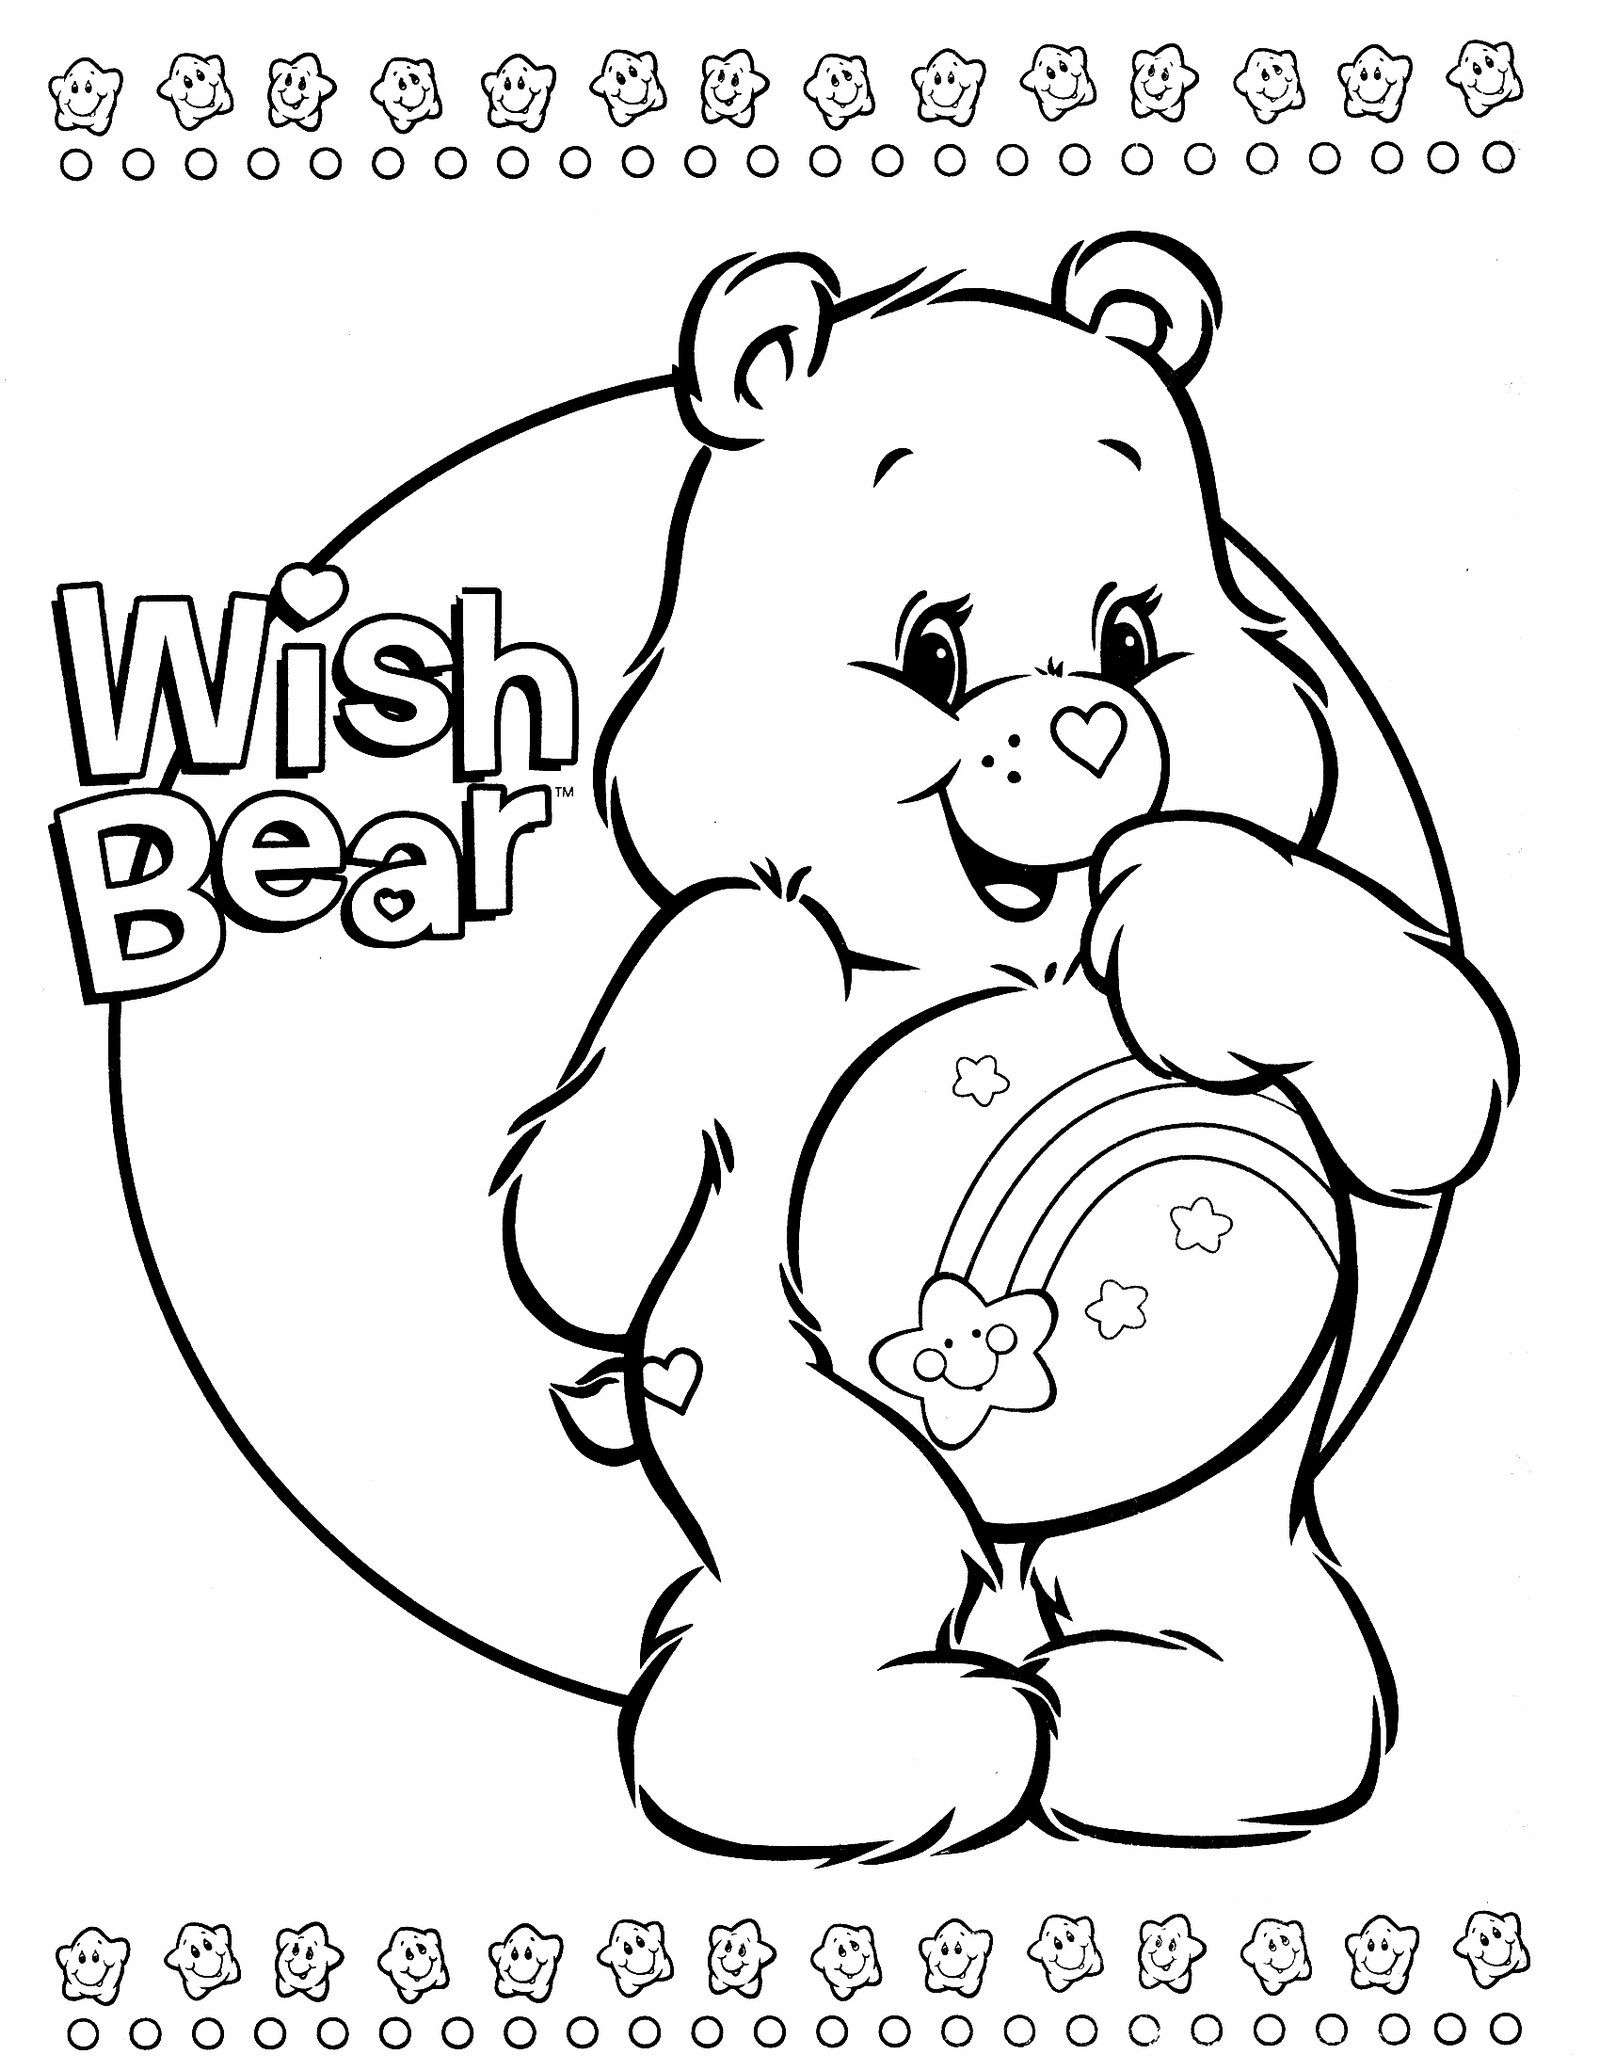 wish bear coloring pages - photo#16